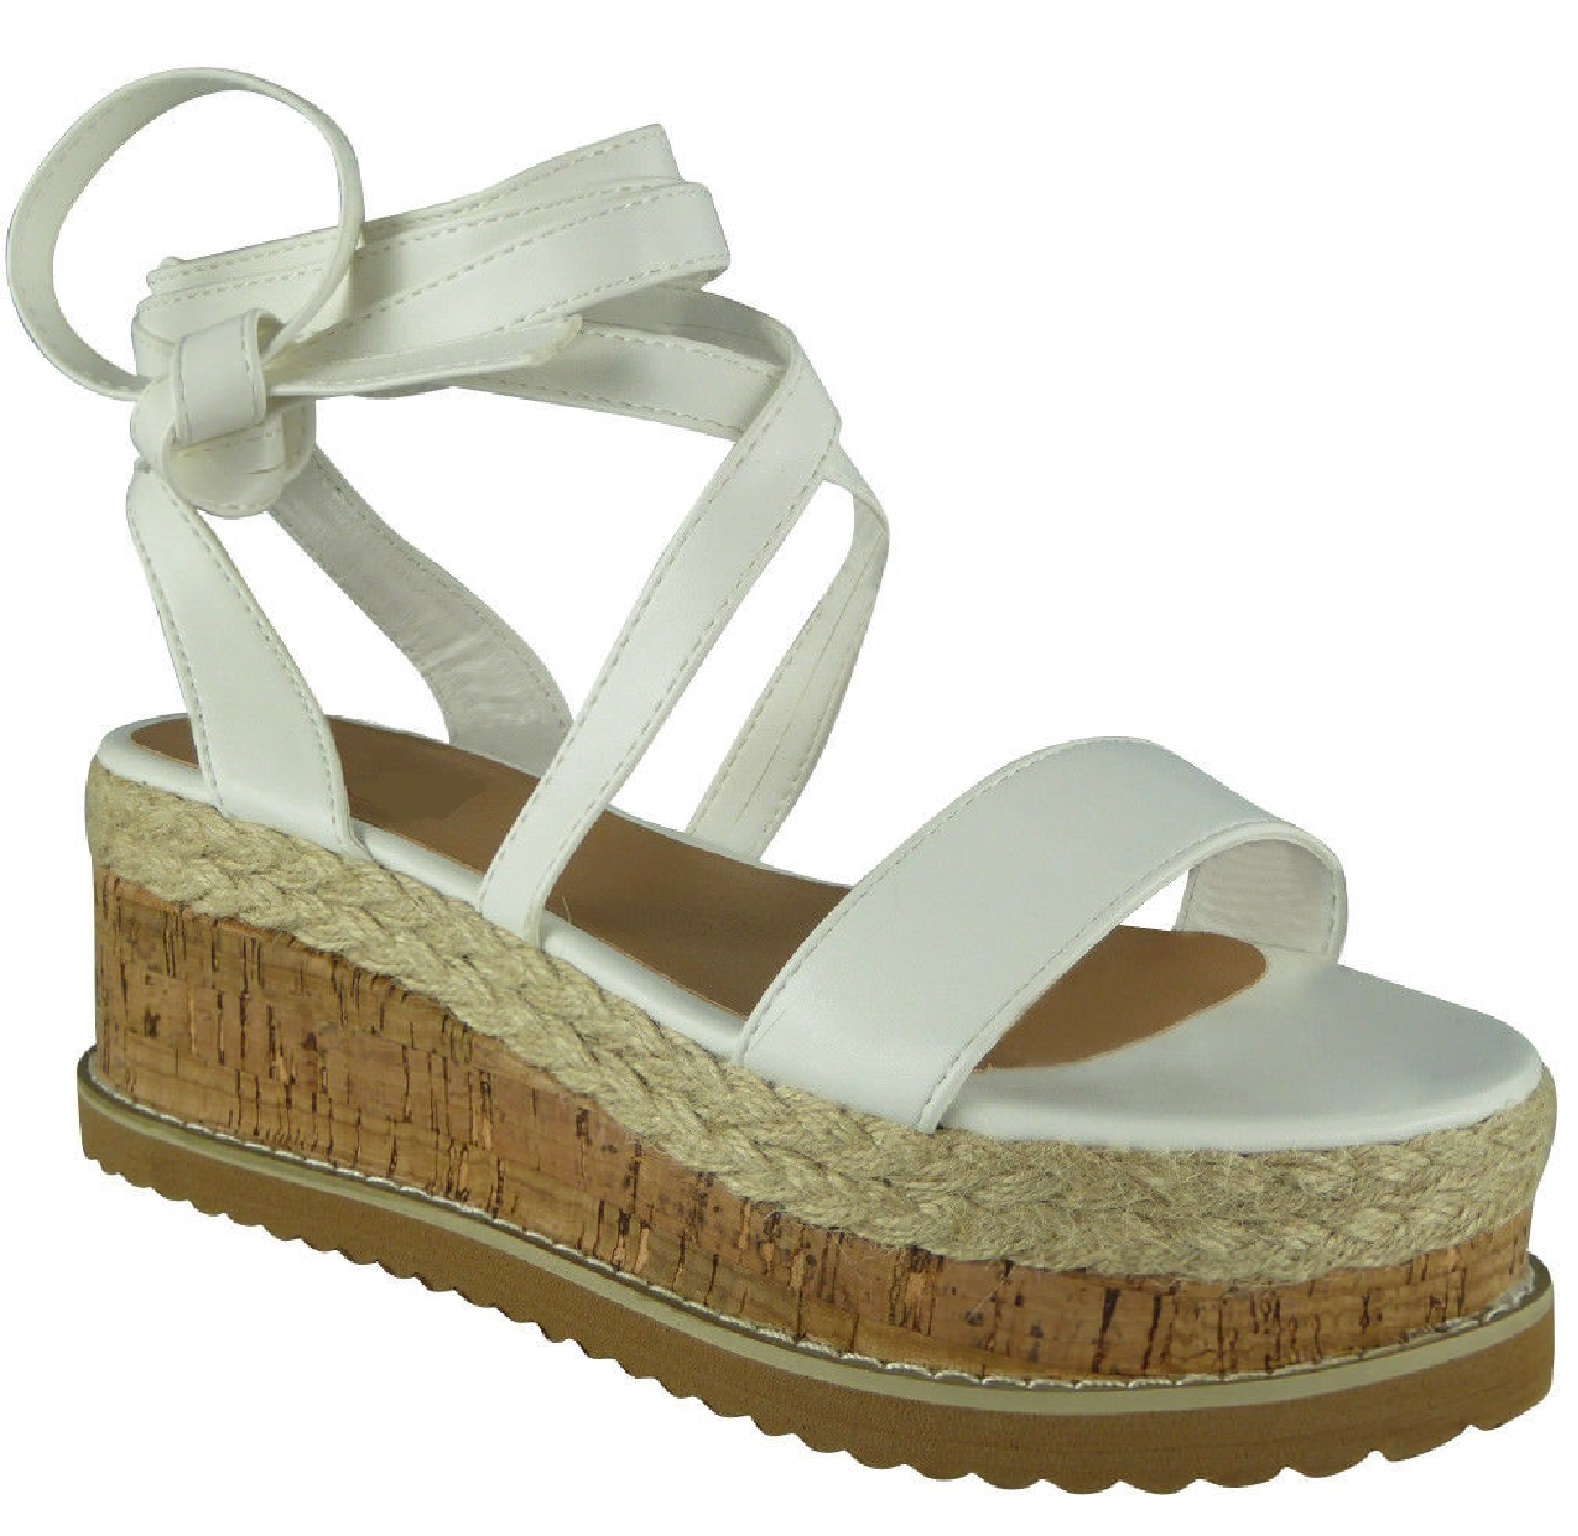 LADIES-WOMENS-FLAT-WEDGE-LACE-TIE-UP-ESPADRILLES-PLATFORM-WEDGE-SUMMER-SANDALS thumbnail 10